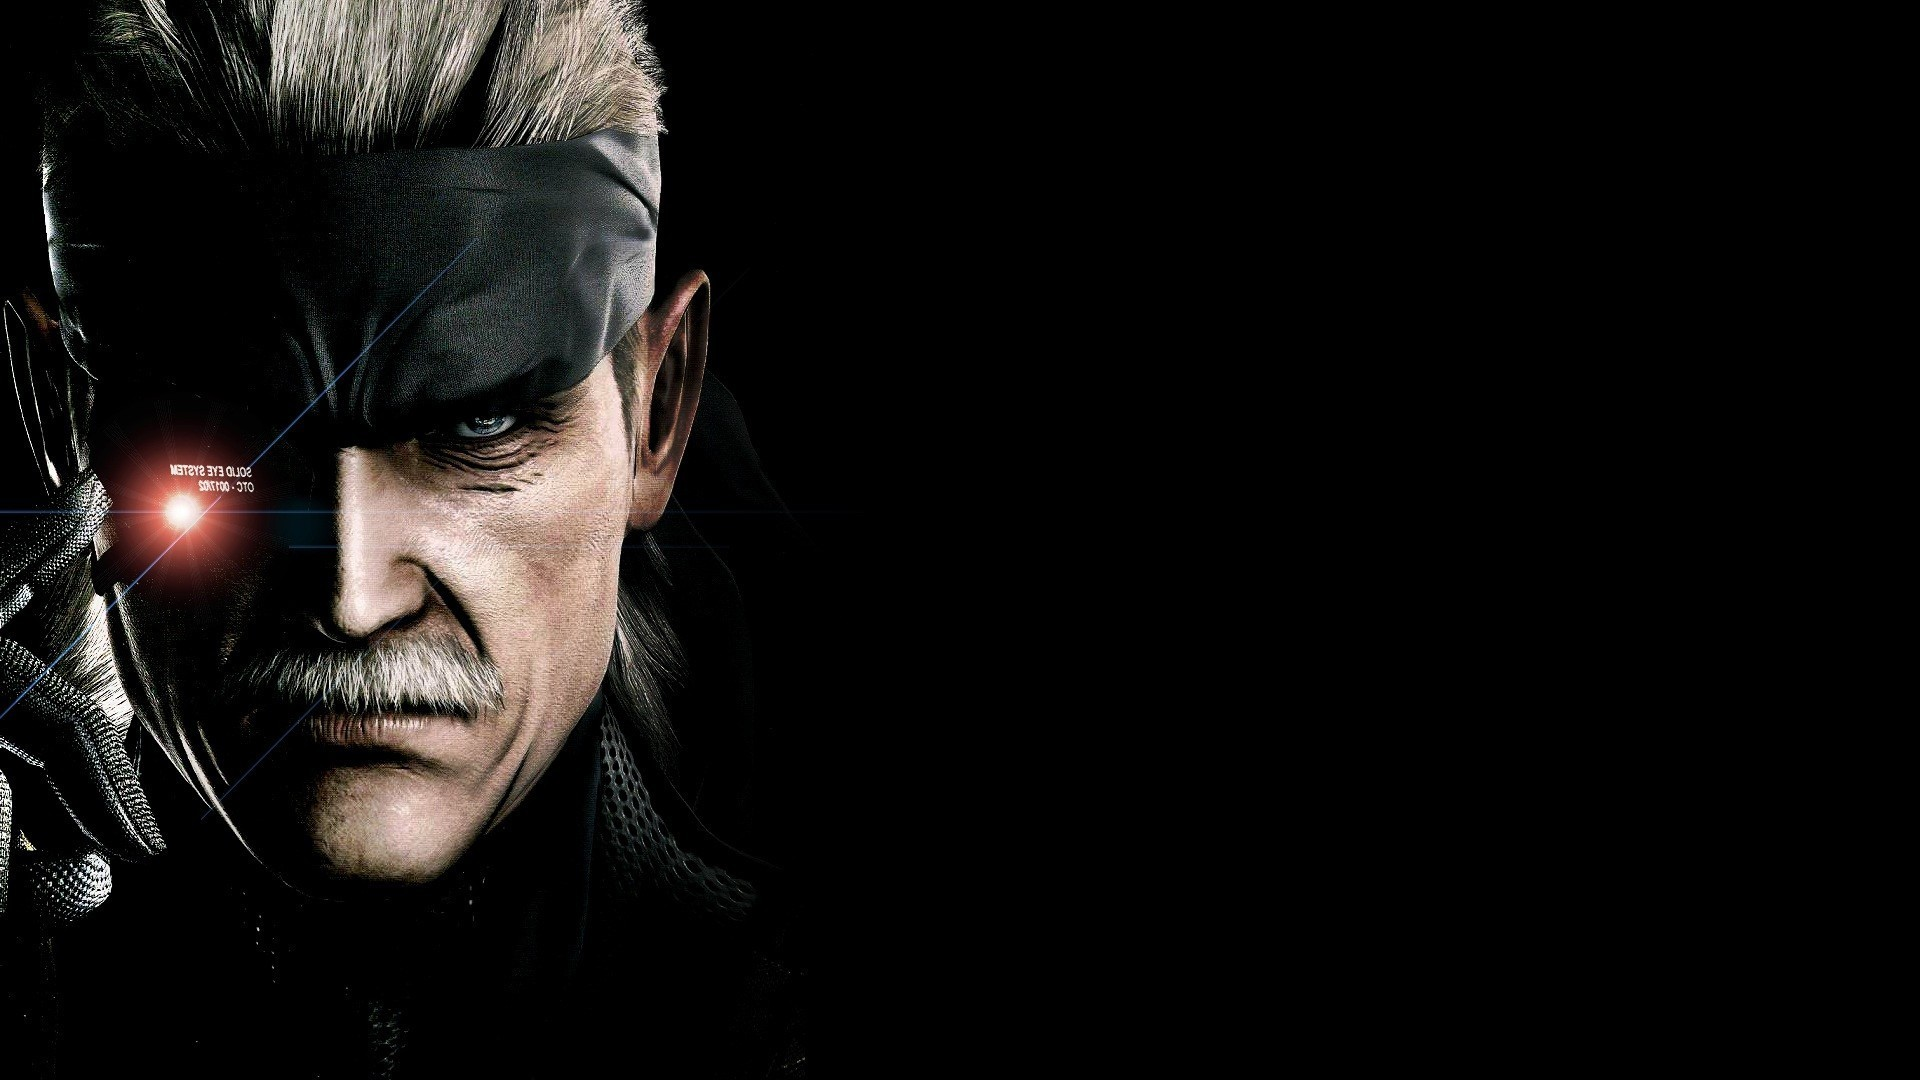 Sniper Wolf Wallpapers Group   HD Wallpapers   Pinterest   Hd wallpaper and  Wallpaper